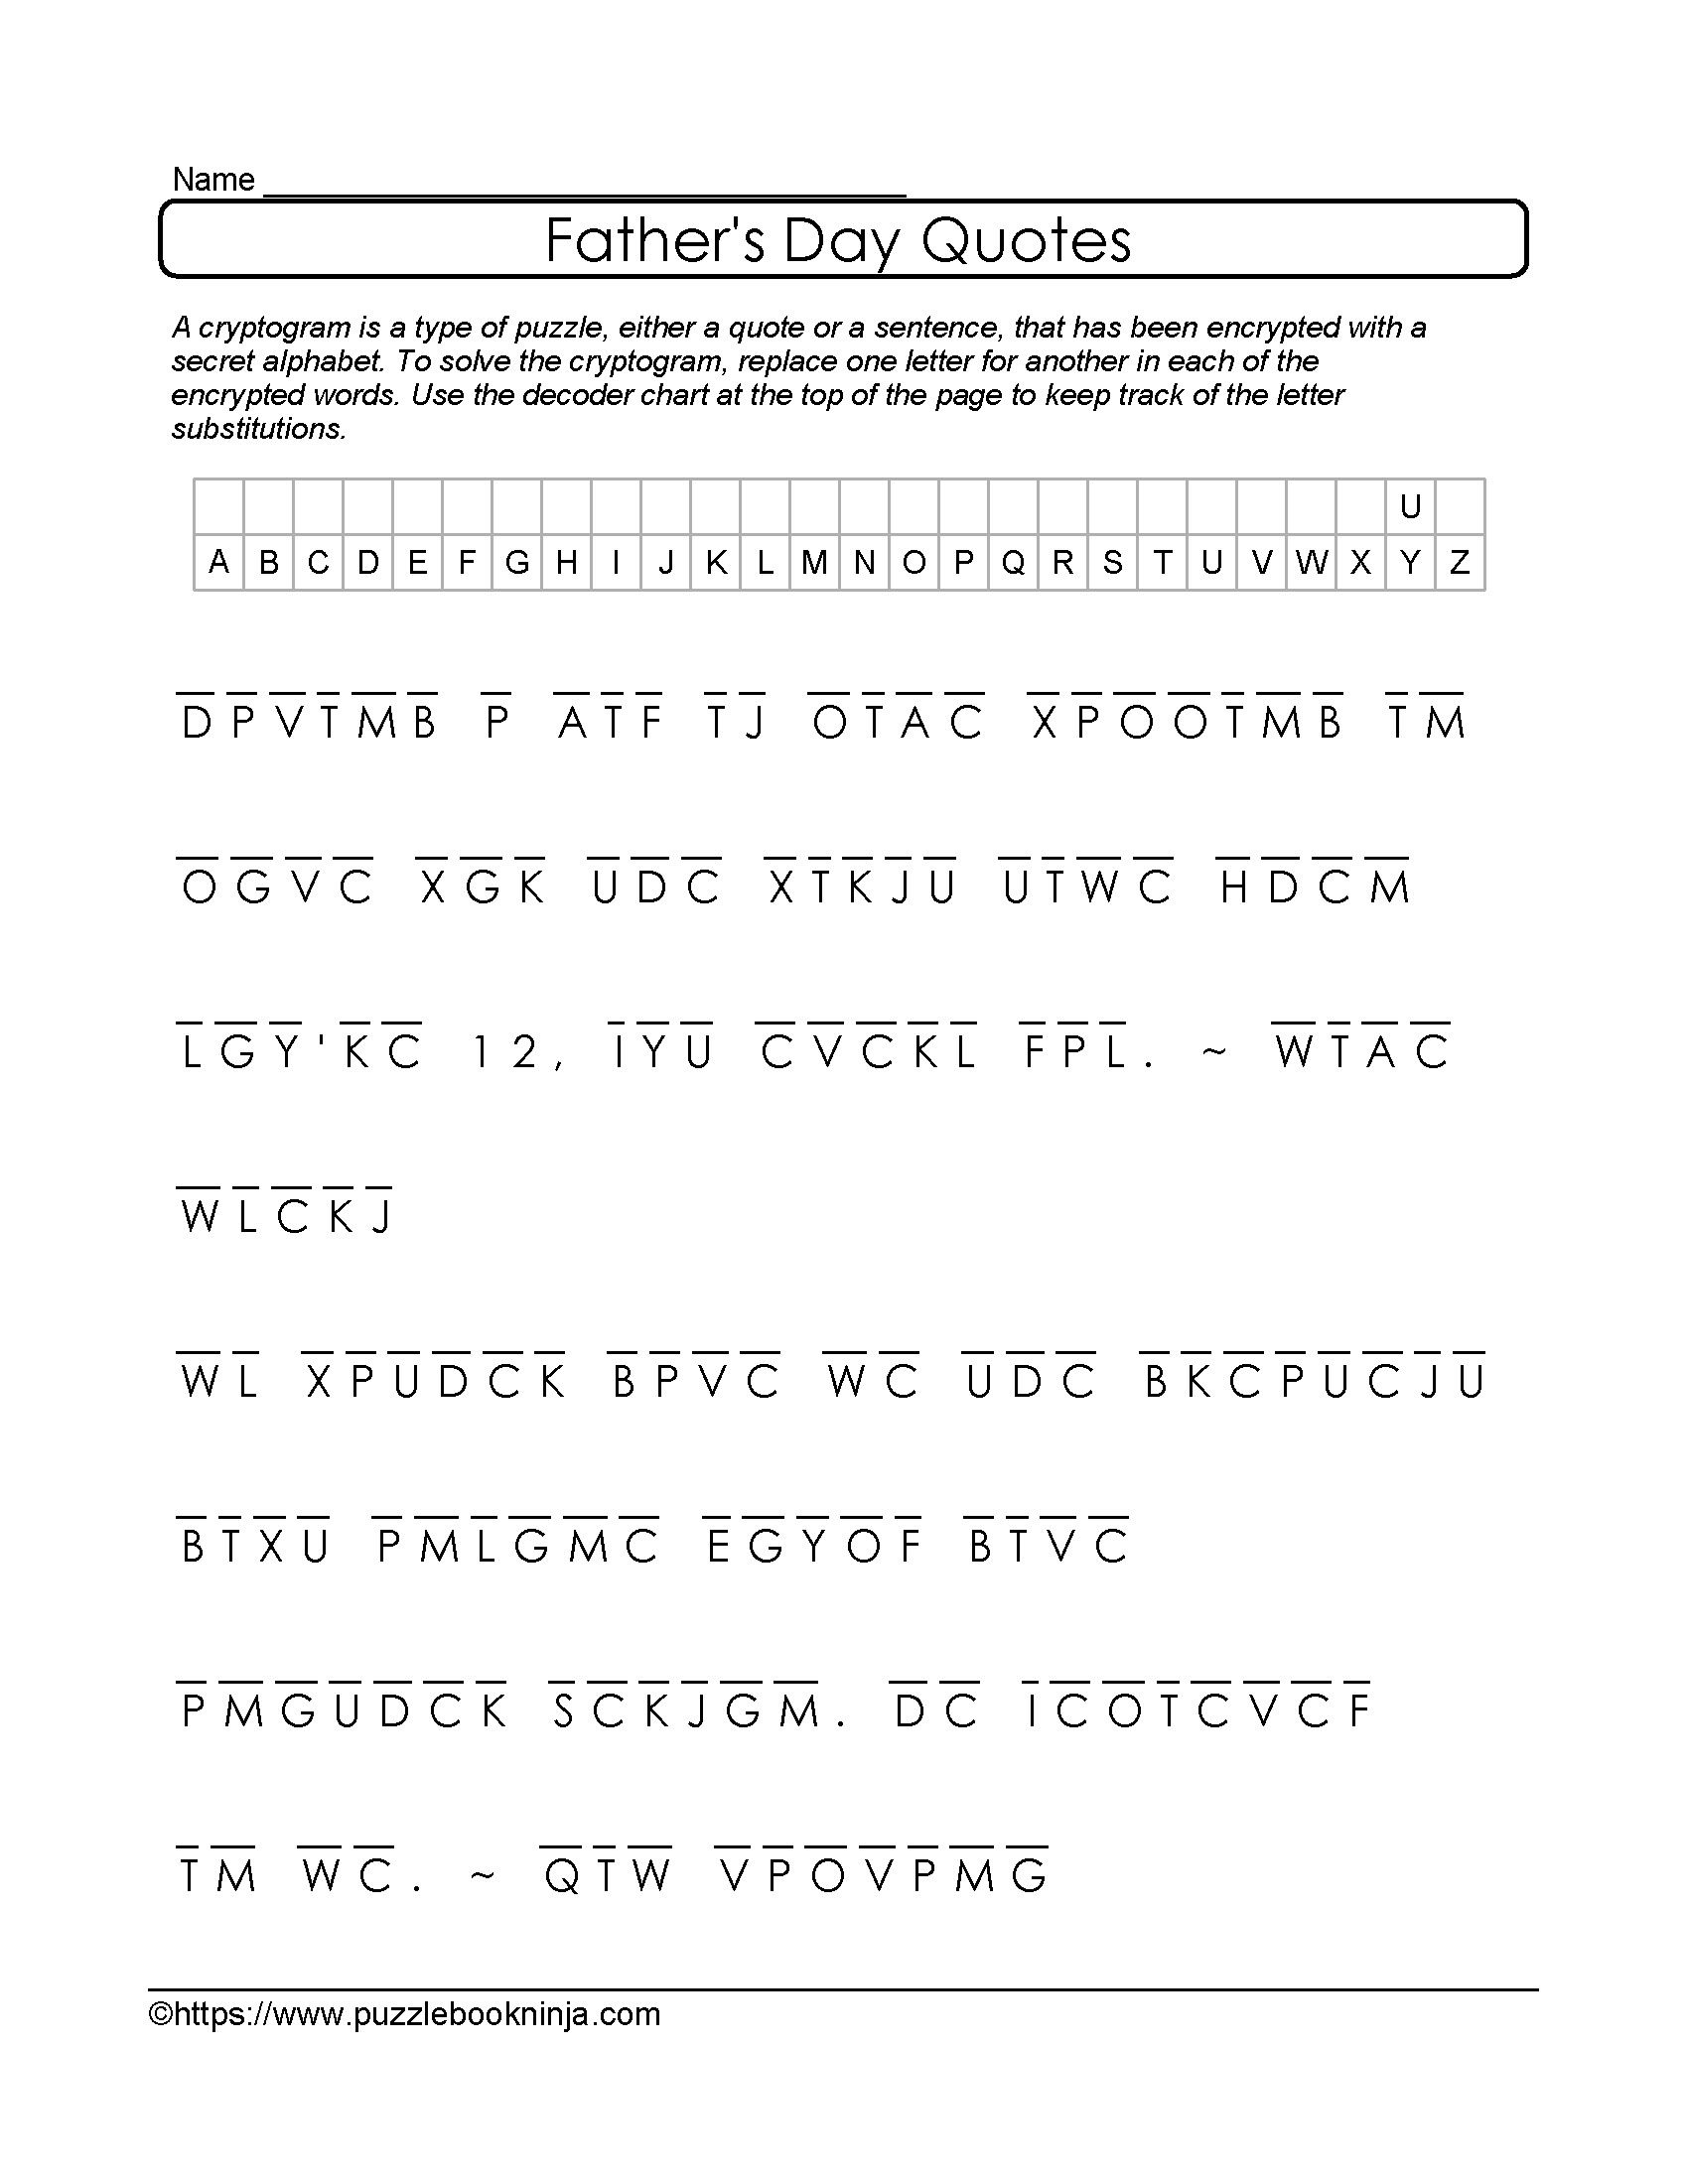 Free And Printable Father S Day Cryptogram Quotes About